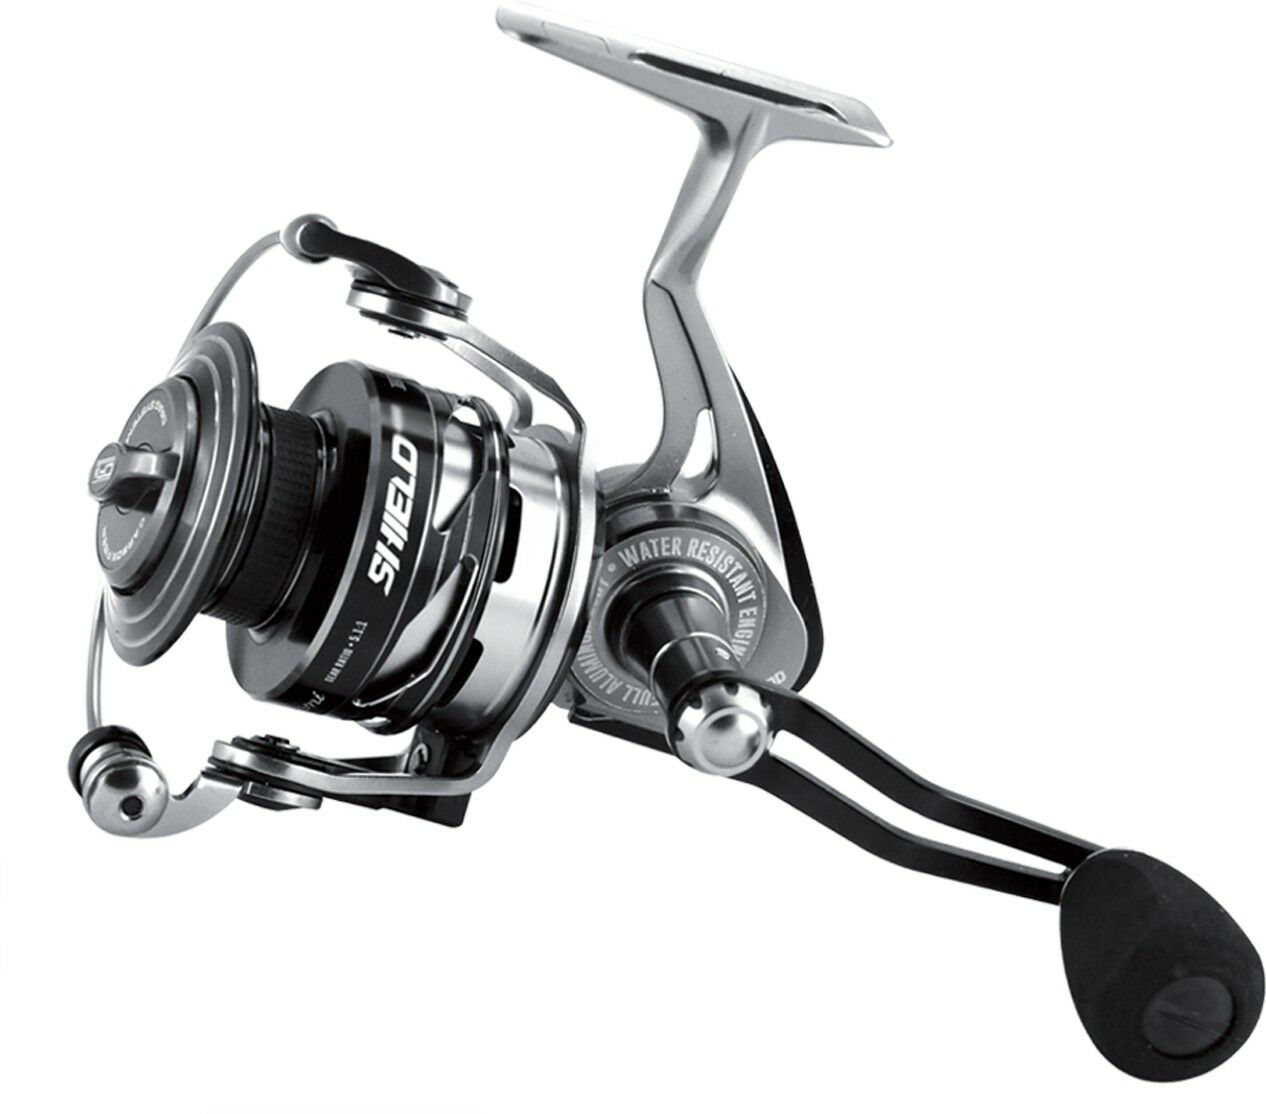 Tsunami Shield 5000 Spinning Reel TSSHD5000 - FREE SHIPPING -